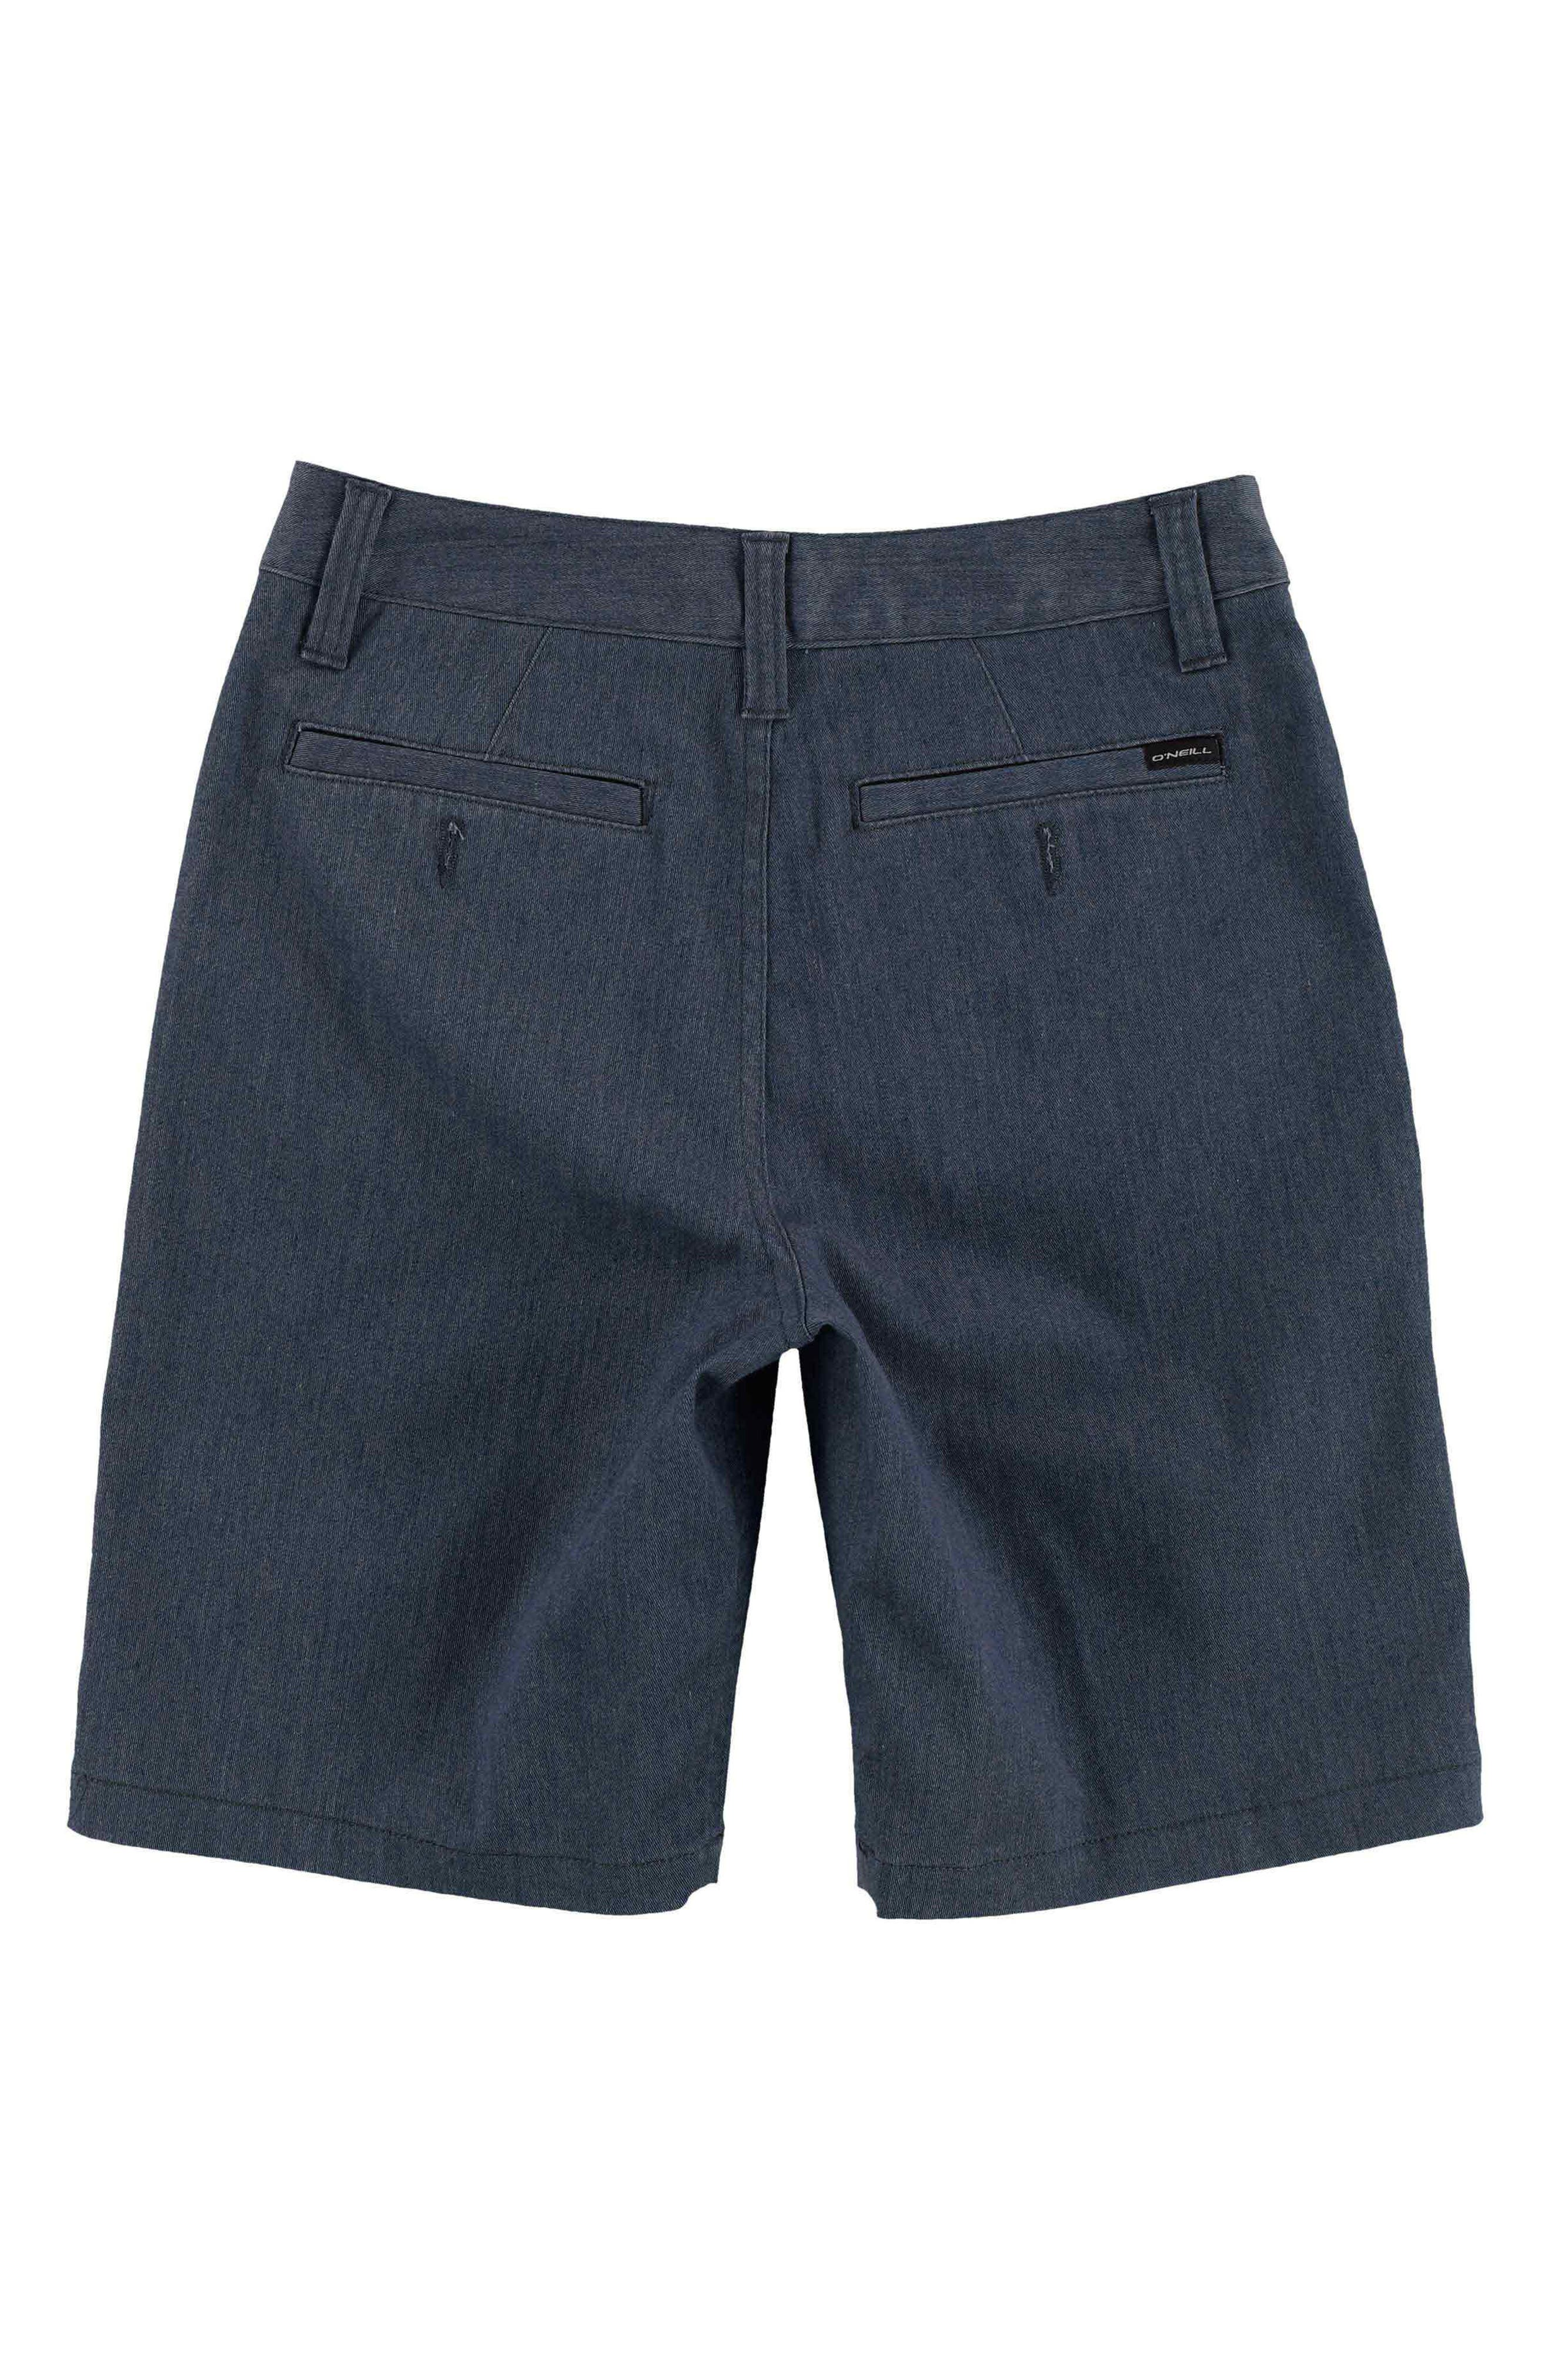 Contact Stretch Shorts,                         Main,                         color, NAVY